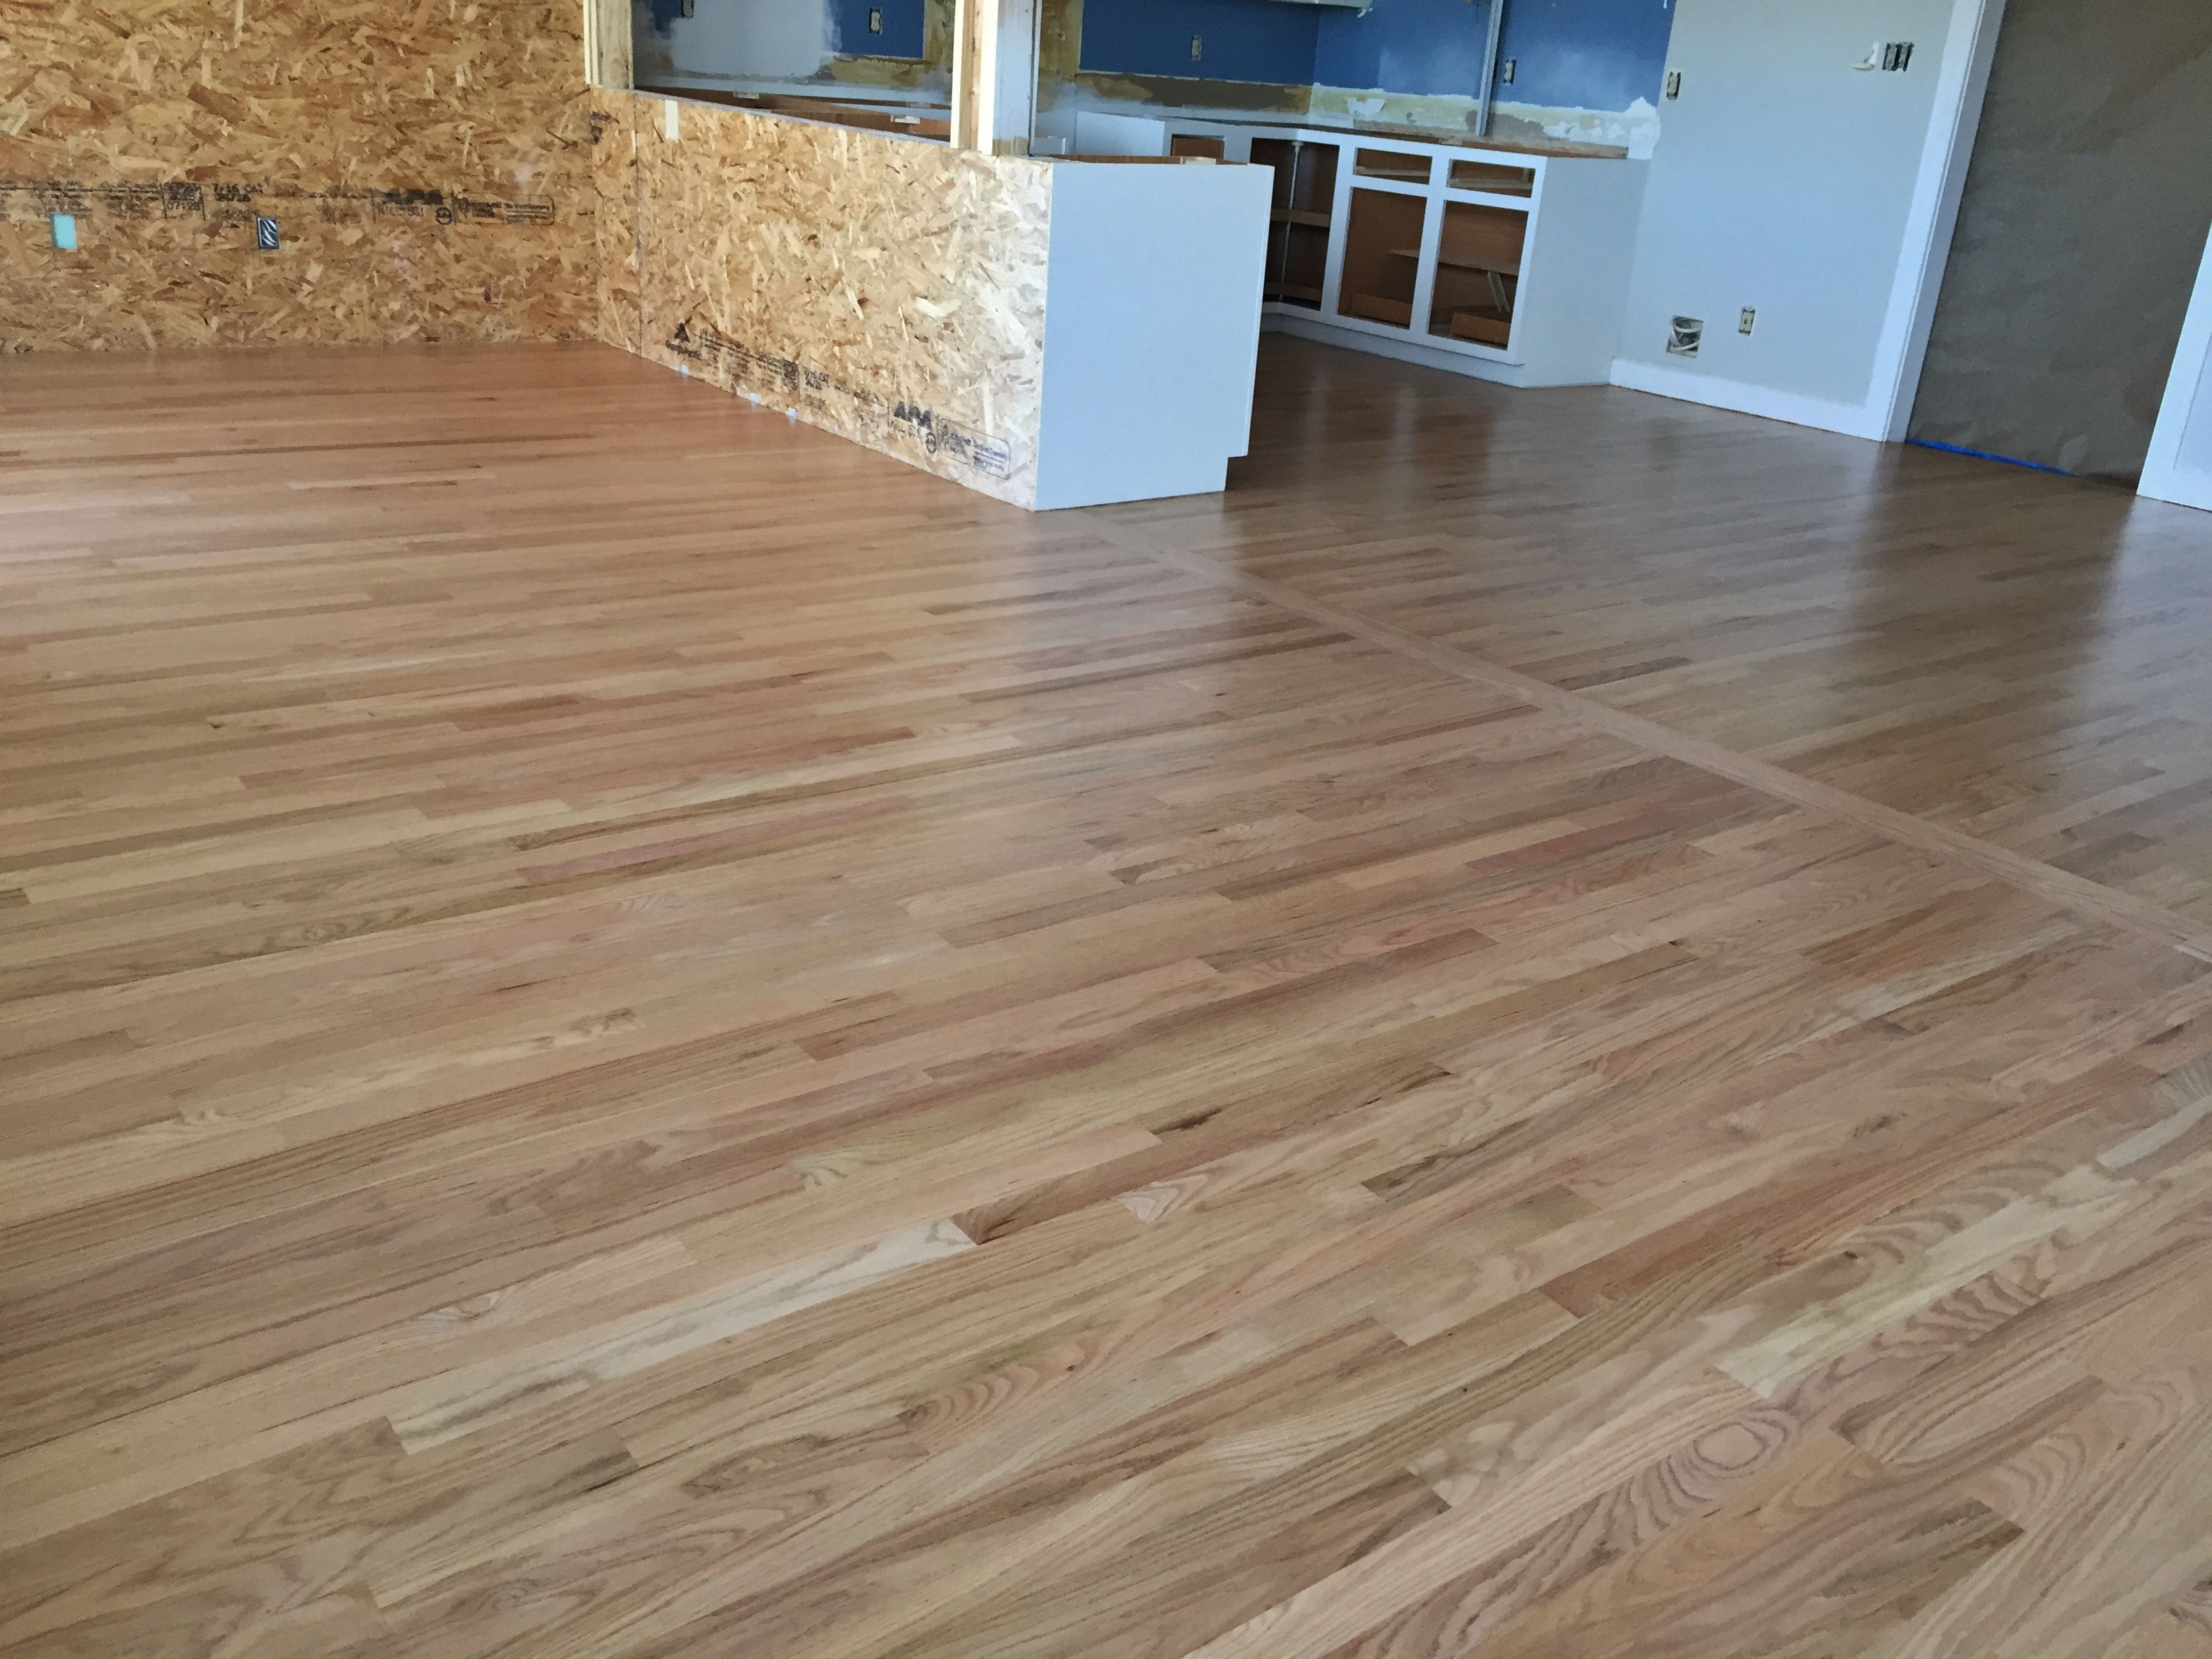 2 1 4 Red Oak With Bona Waterbase Finish Red Oak Hardwood Floors Refinishing Hardwood Floors Red Oak Hardwood